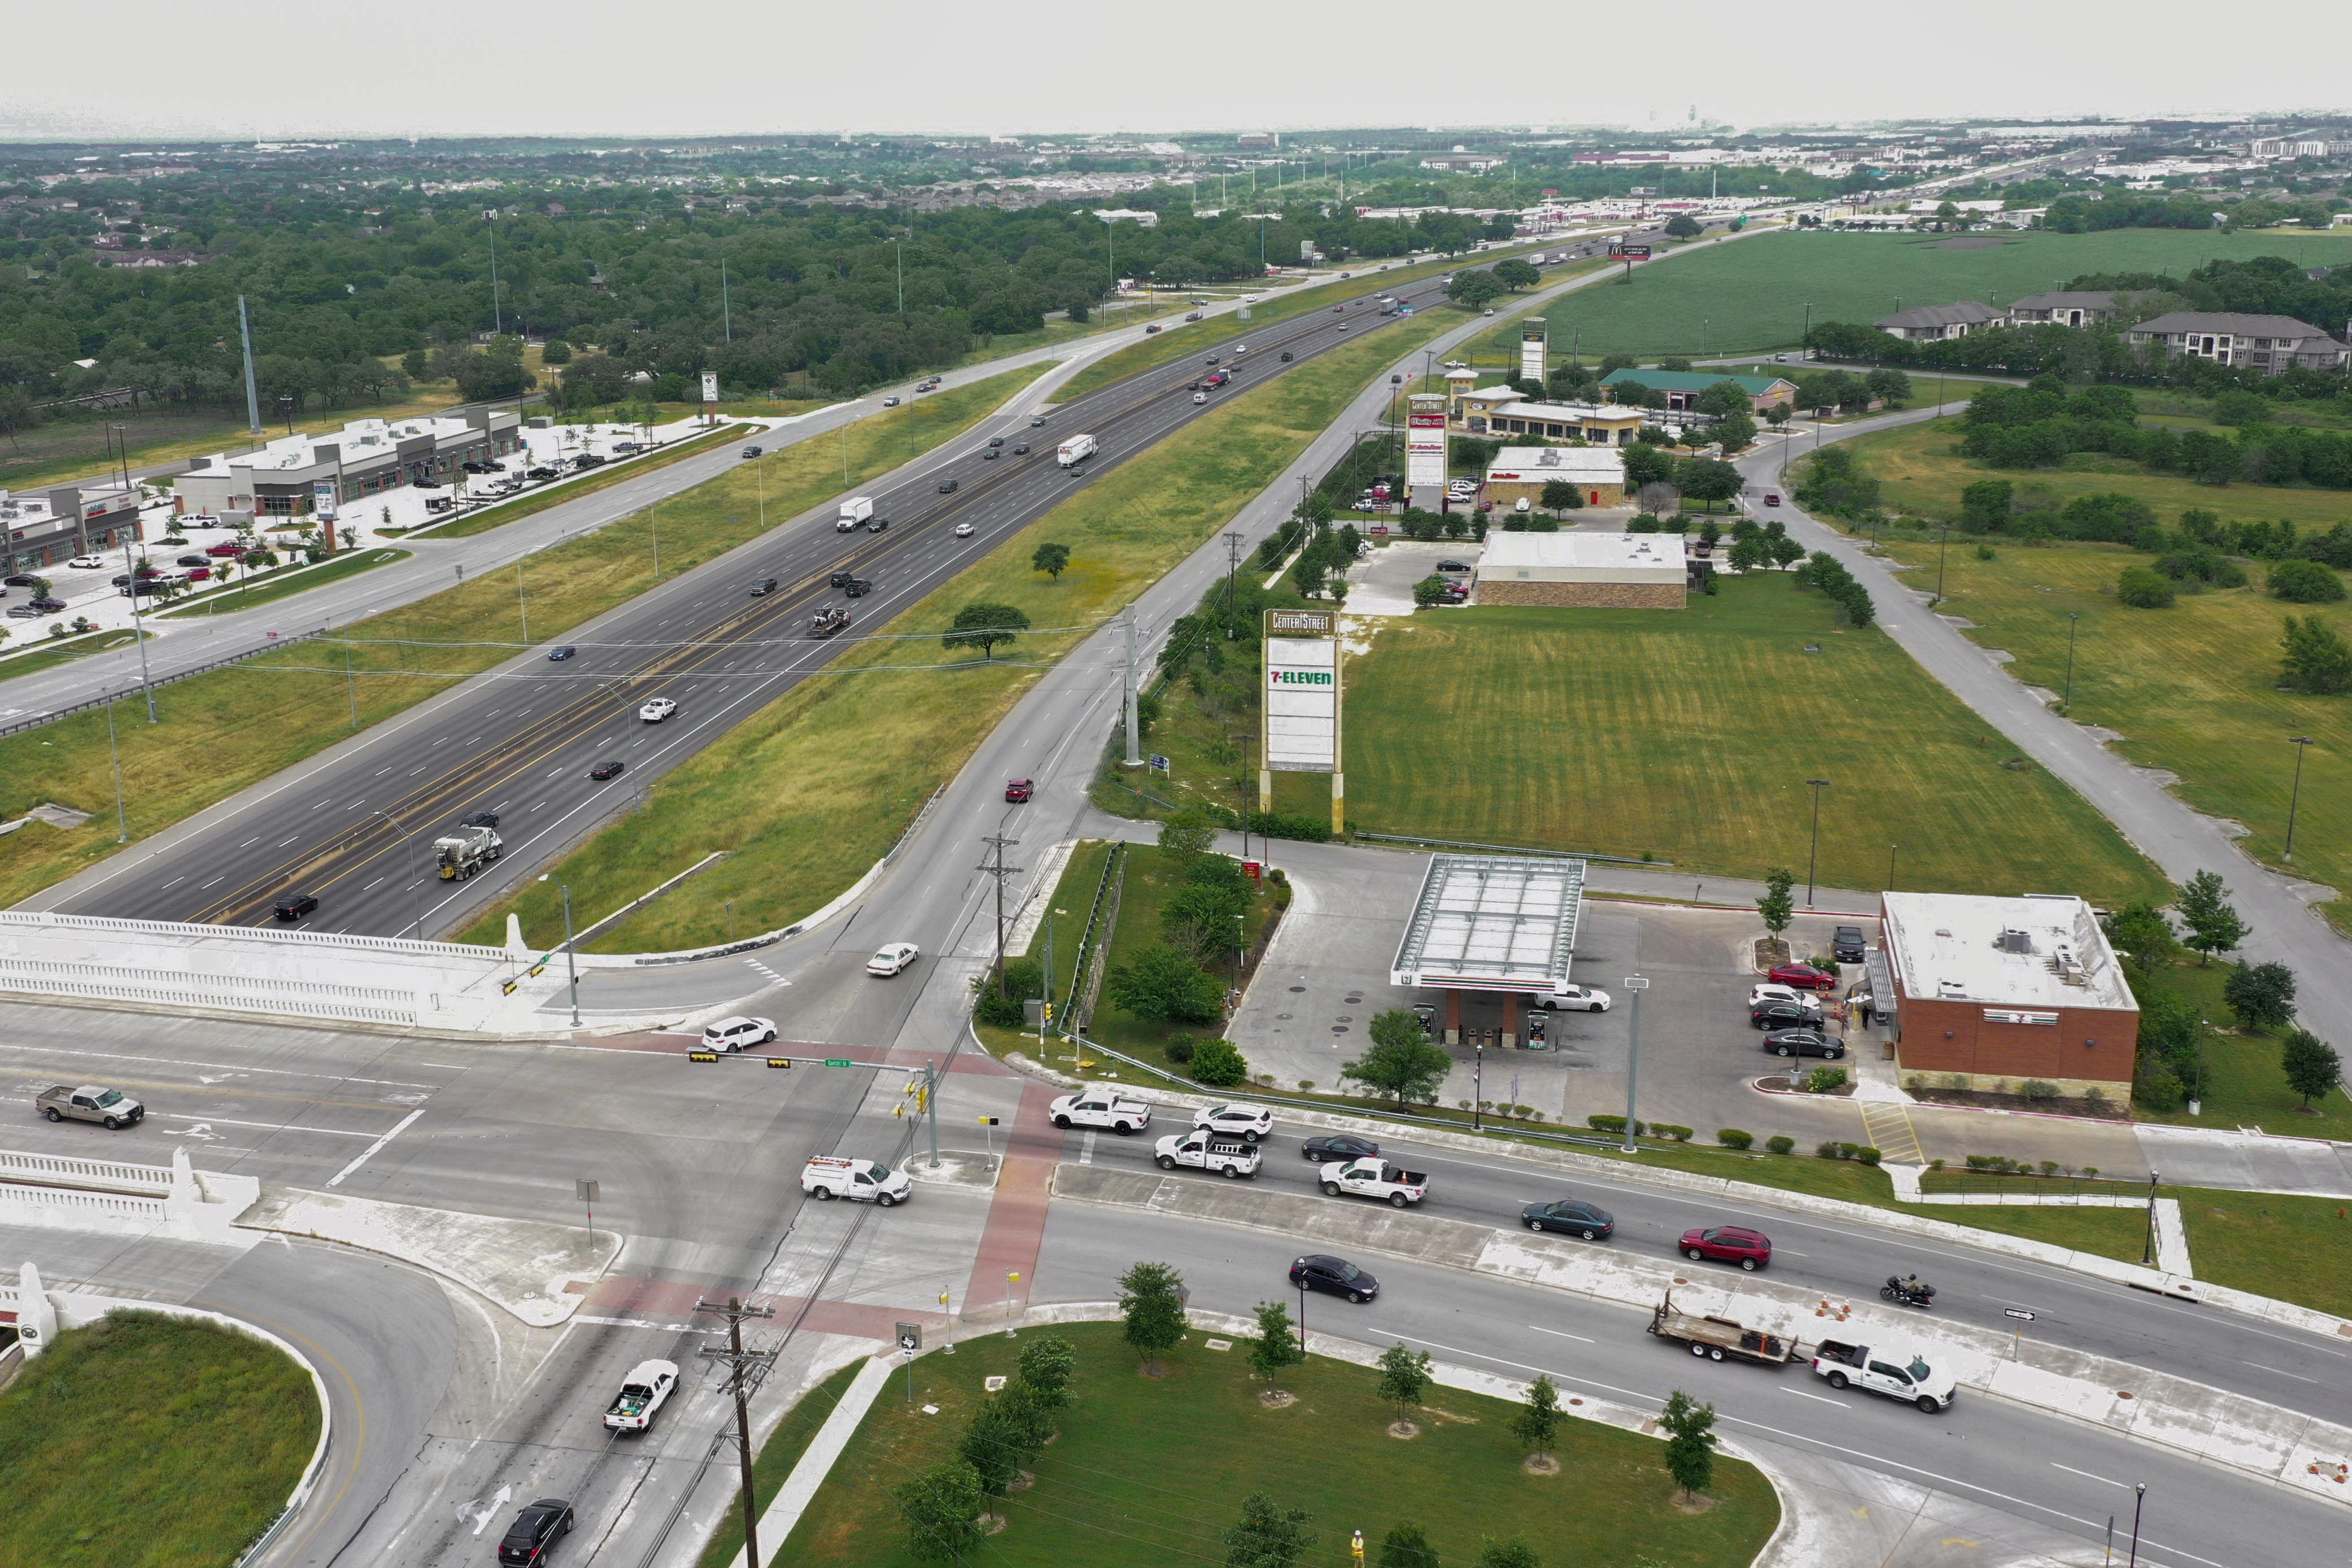 Northbound I-35 frontage road at RM 150 before construction starts